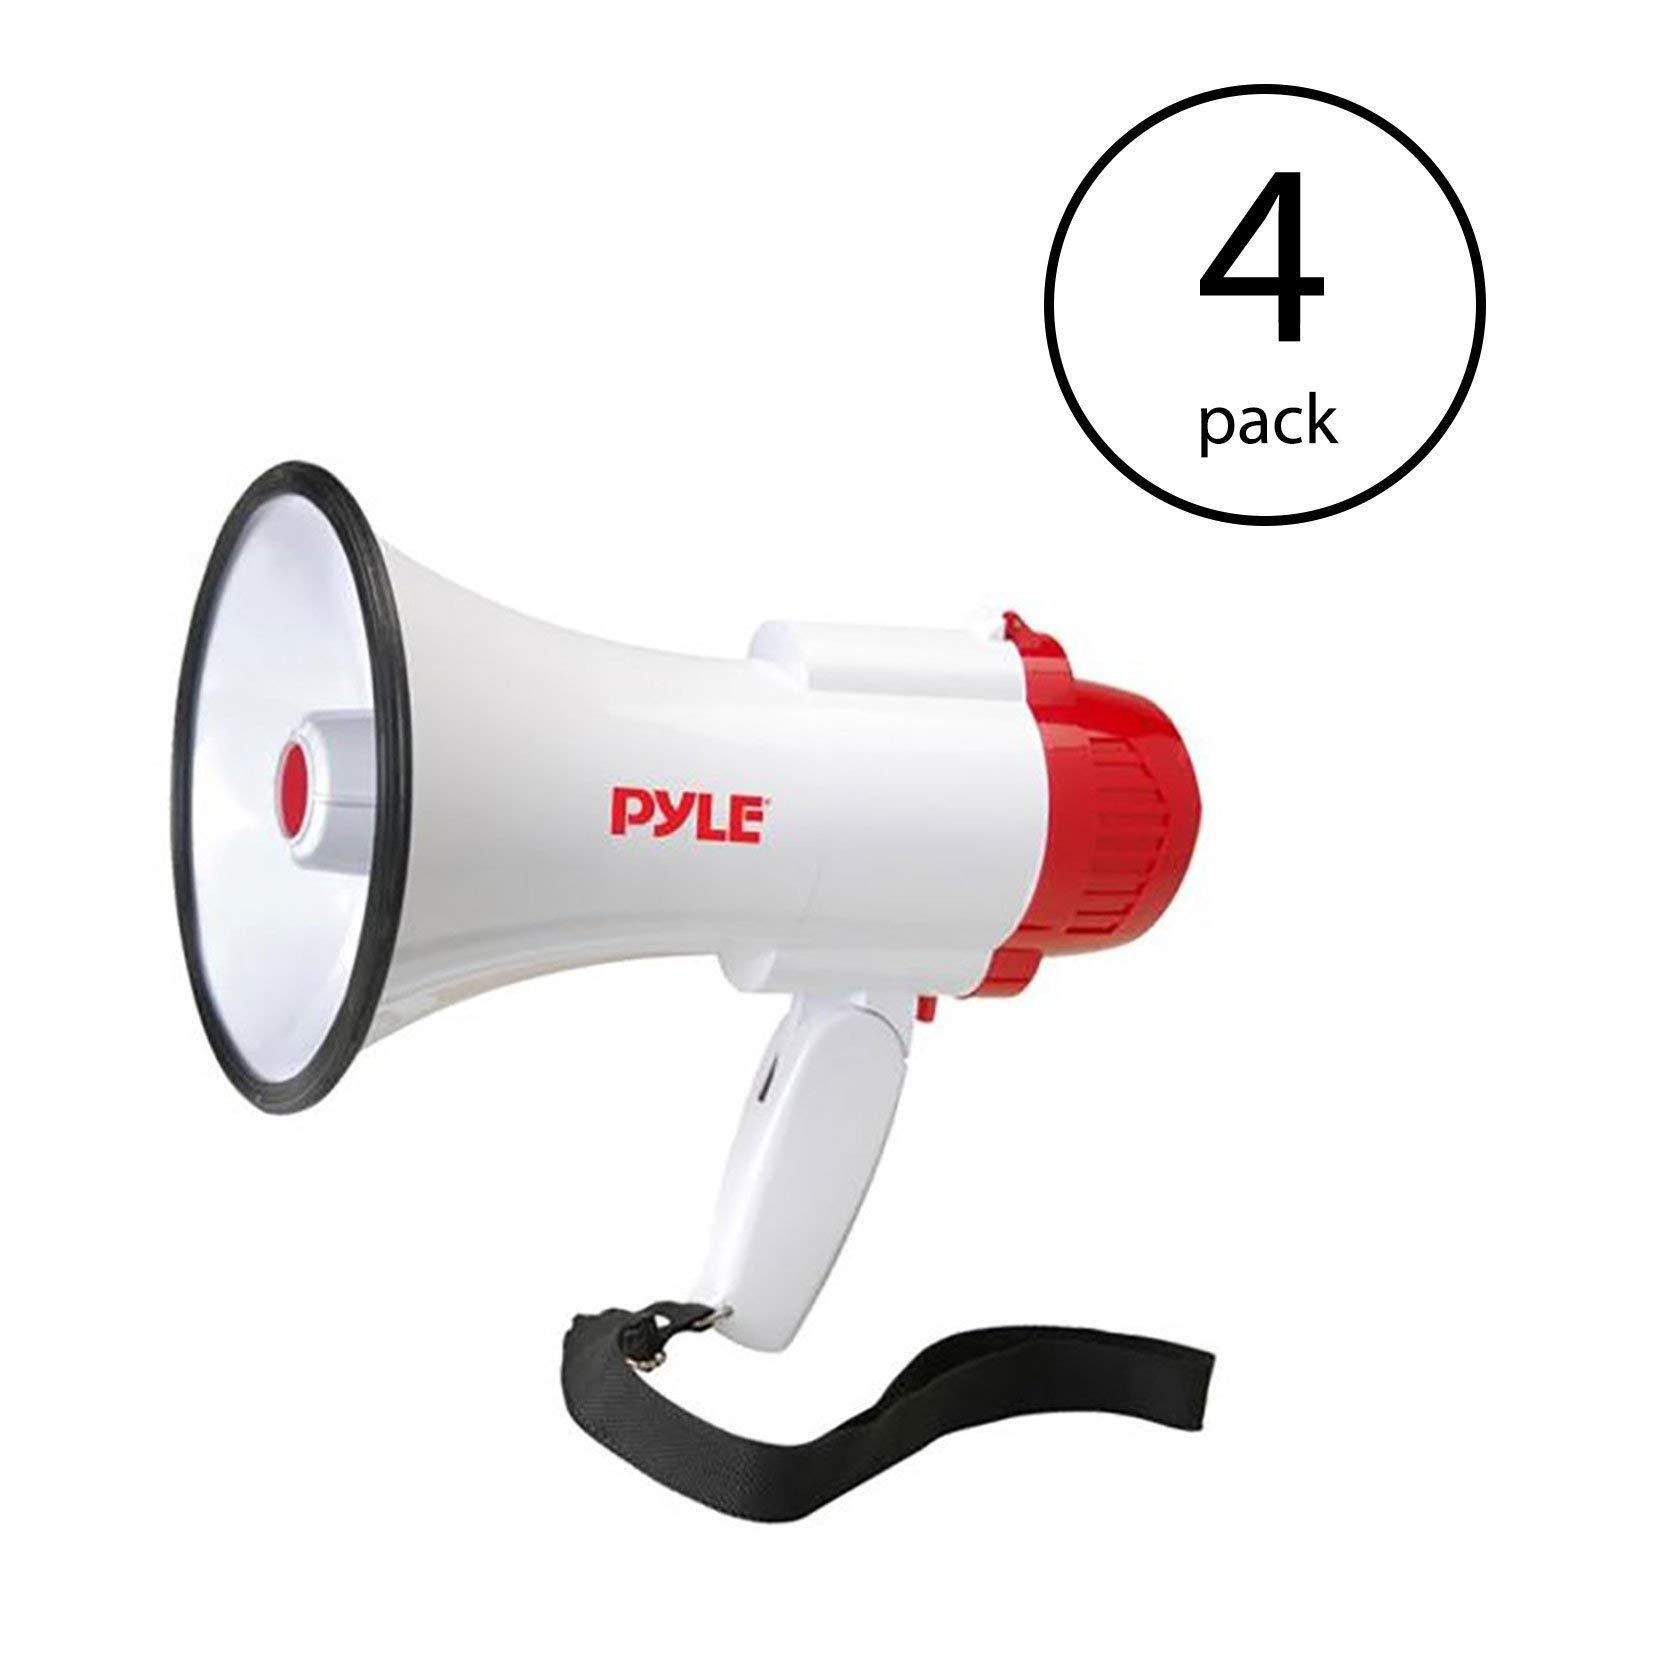 Pyle Pro Handheld Megaphone Bull Horn with Siren and Voice Recorder (4 Pack)